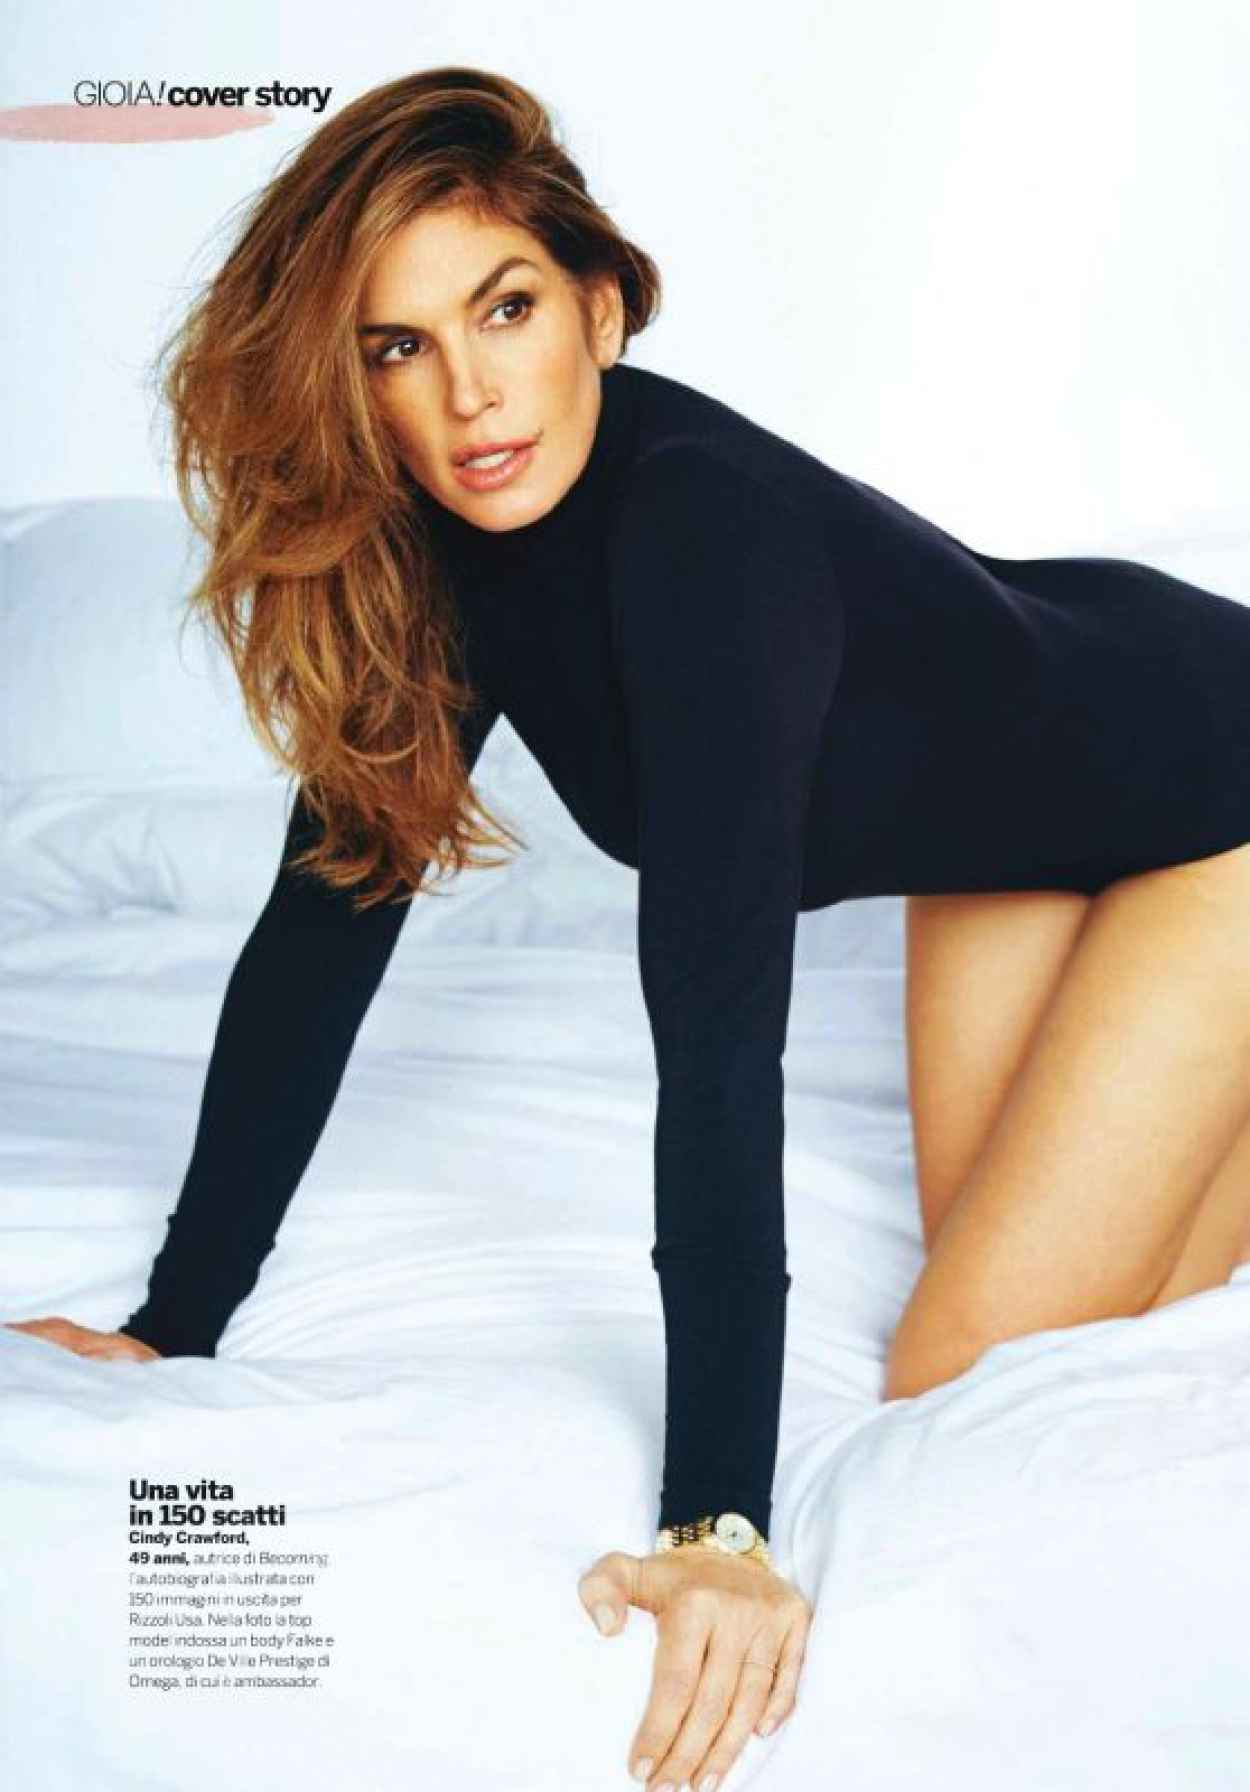 Cindy Crawford - Gioia Magazine October 2015-1